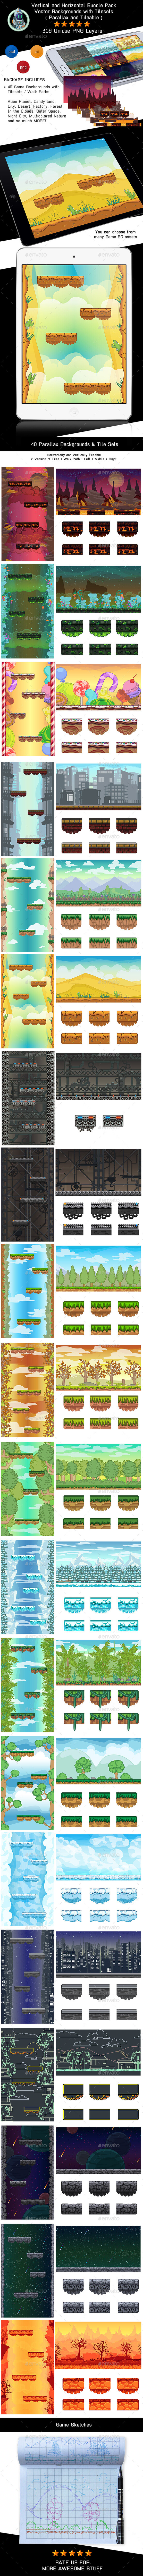 40 Vector Game Backgrounds with Tilesets - Horizontal and Vertical - Backgrounds Game Assets